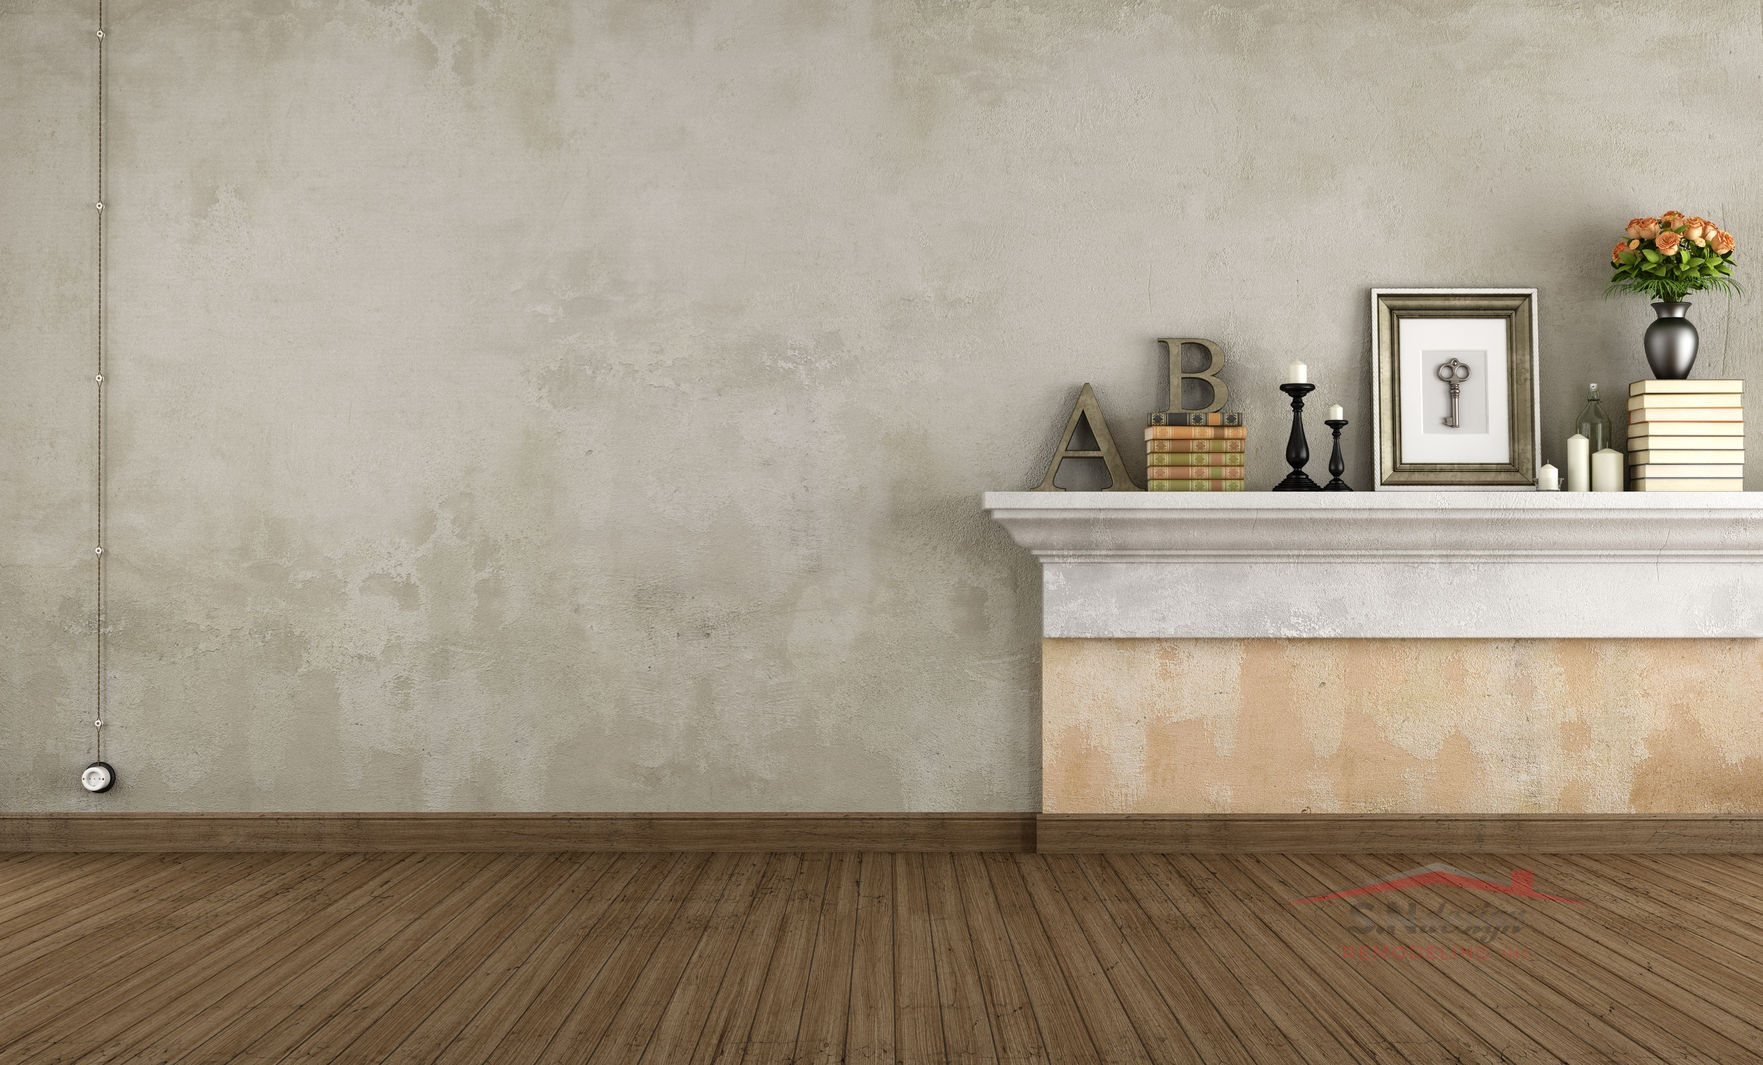 29233040 - empty vintage room with shelf in masonry - rendering